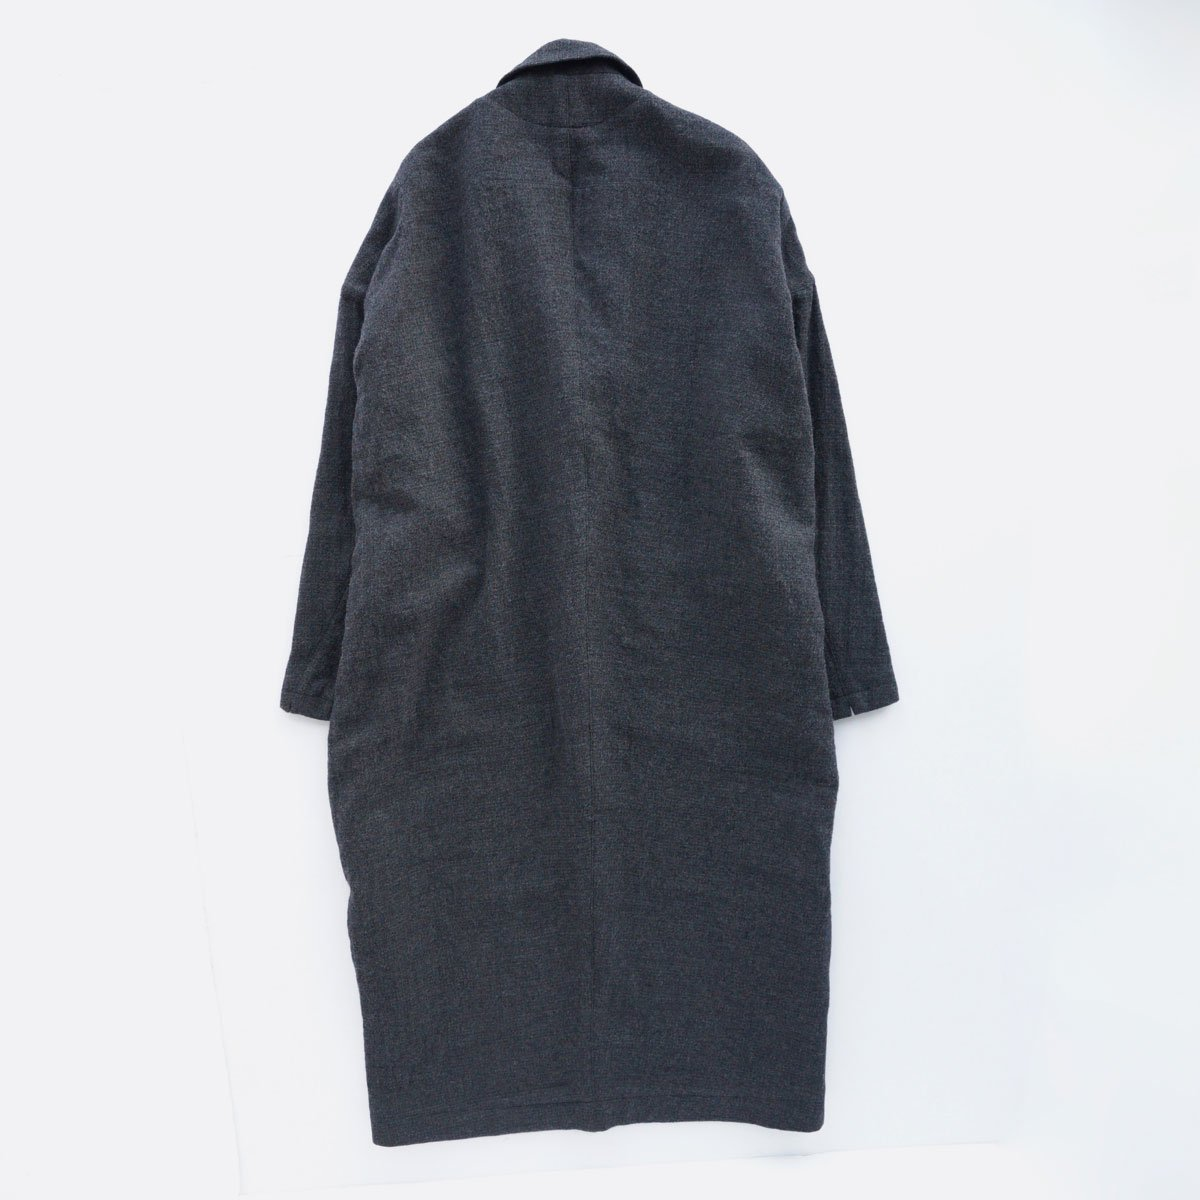 FIRMUM WORSTED WOOL & COTTON DOBBY DOUBLE CLOTH COAT (GREY&BLACK)2